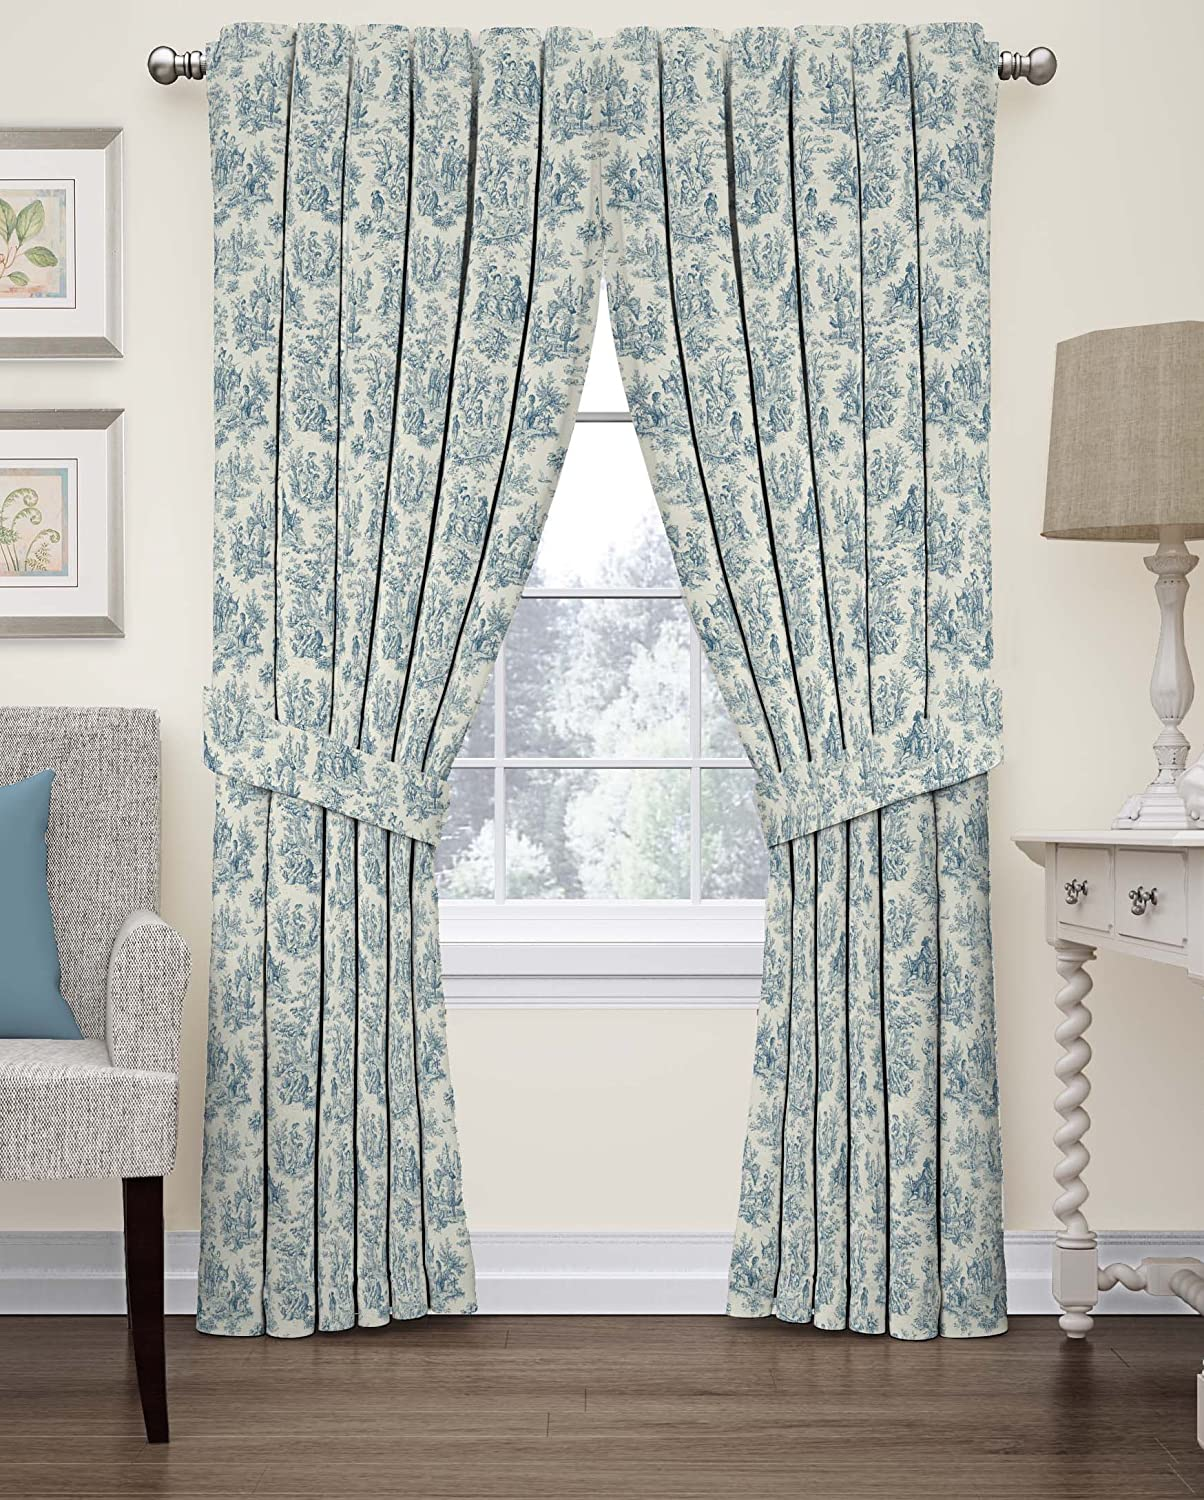 French country curtains waverly - Amazon Com Waverly 15402052063crf Charmed Life 52 Inch By 63 Inch Toile Single Window Curtain Panel Cornflower Home Kitchen